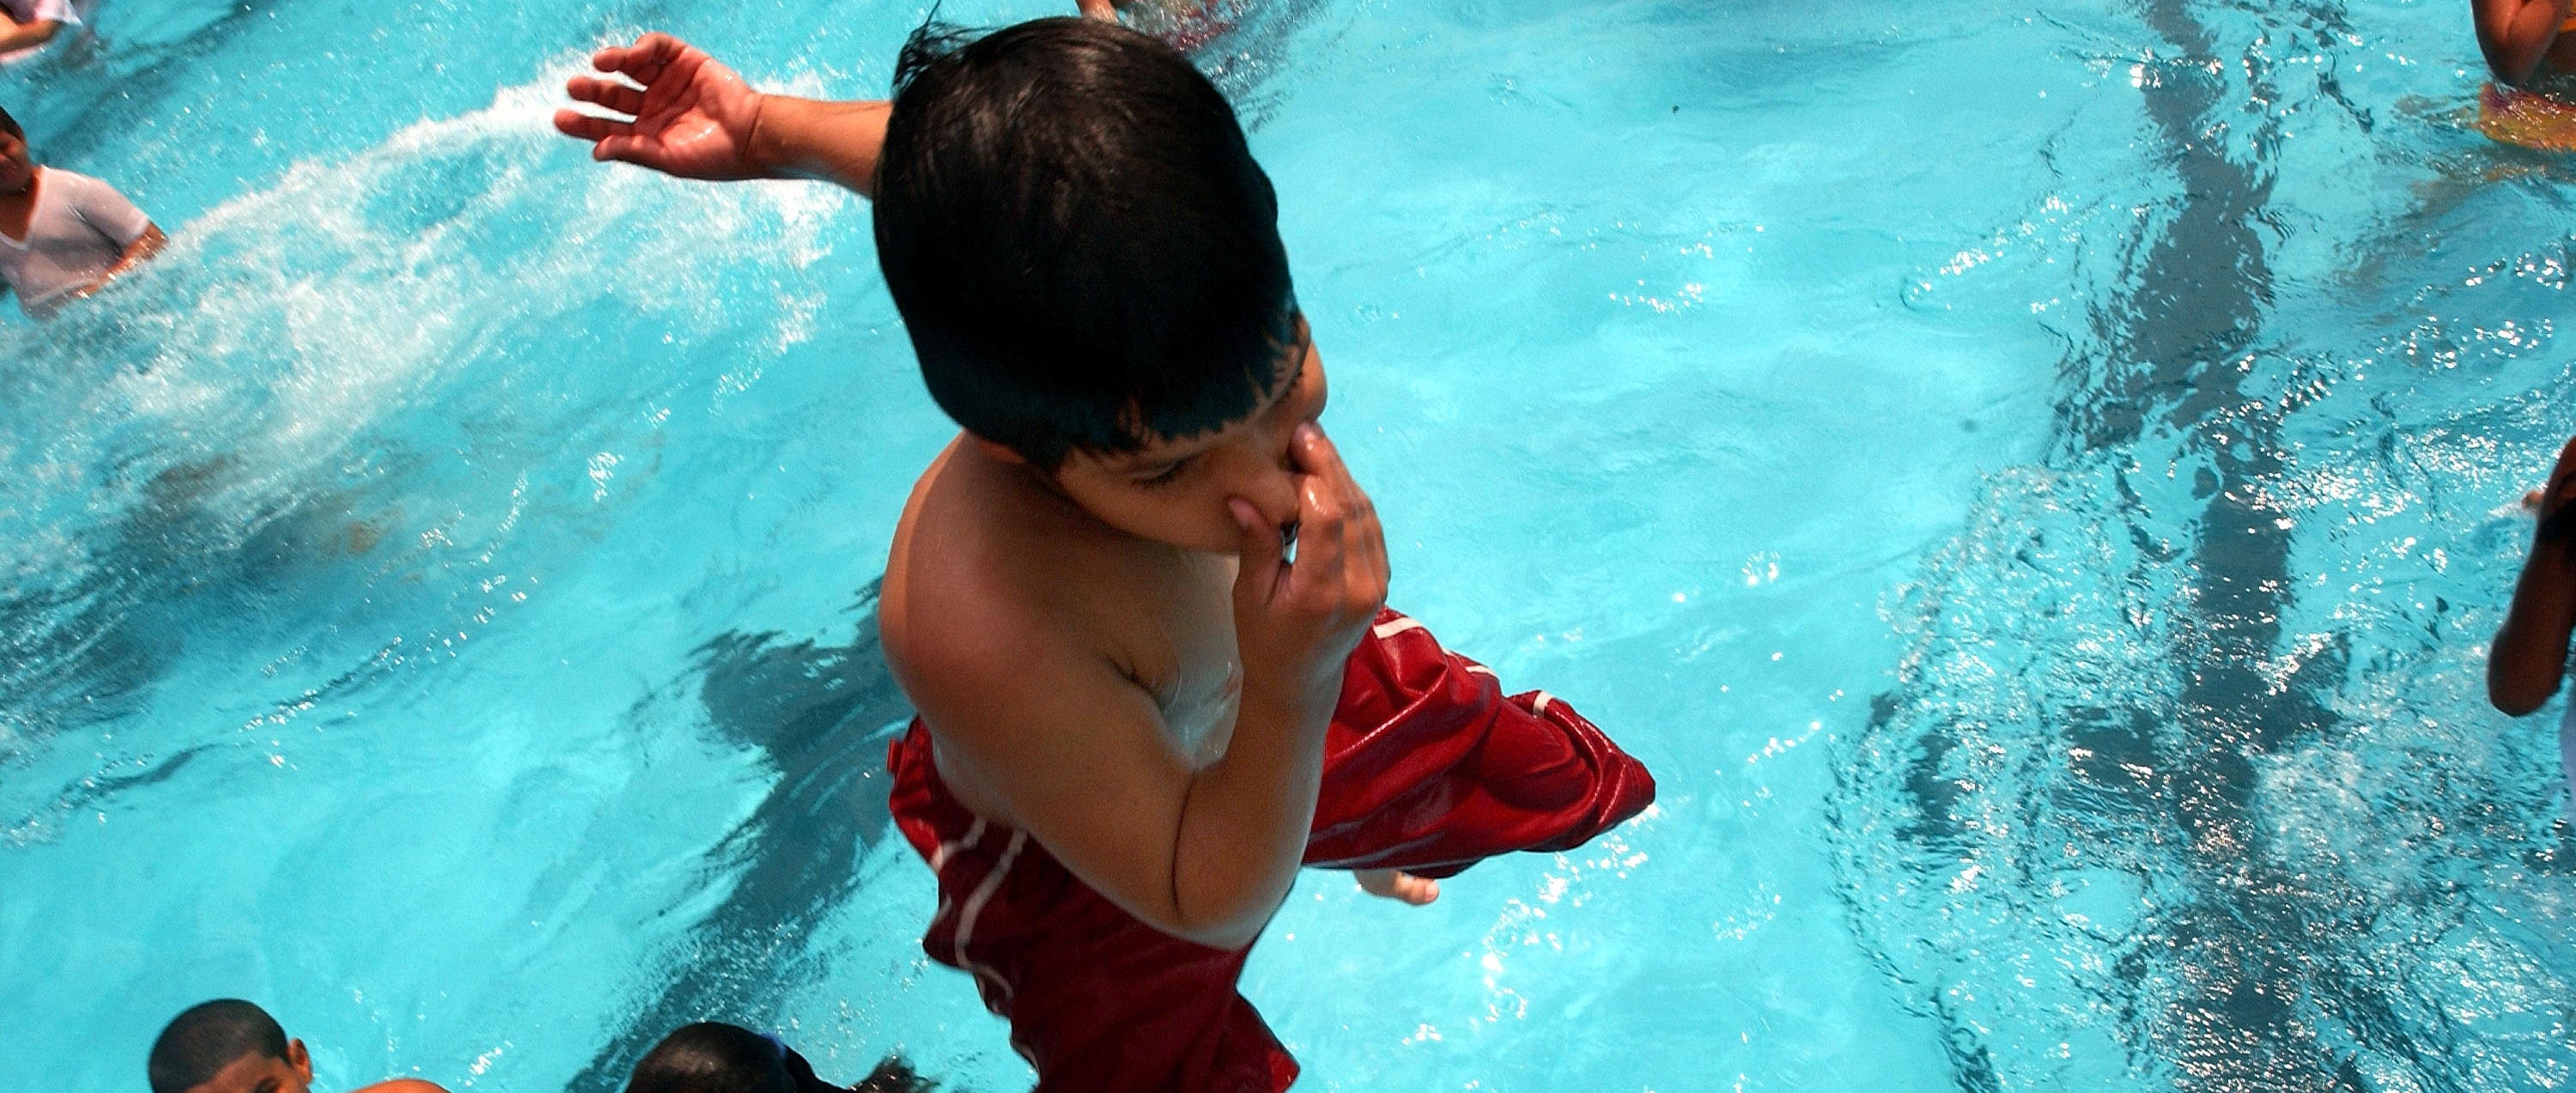 Cdc Warns Against Fecal Matter In Swimming Pools Fox News Latino